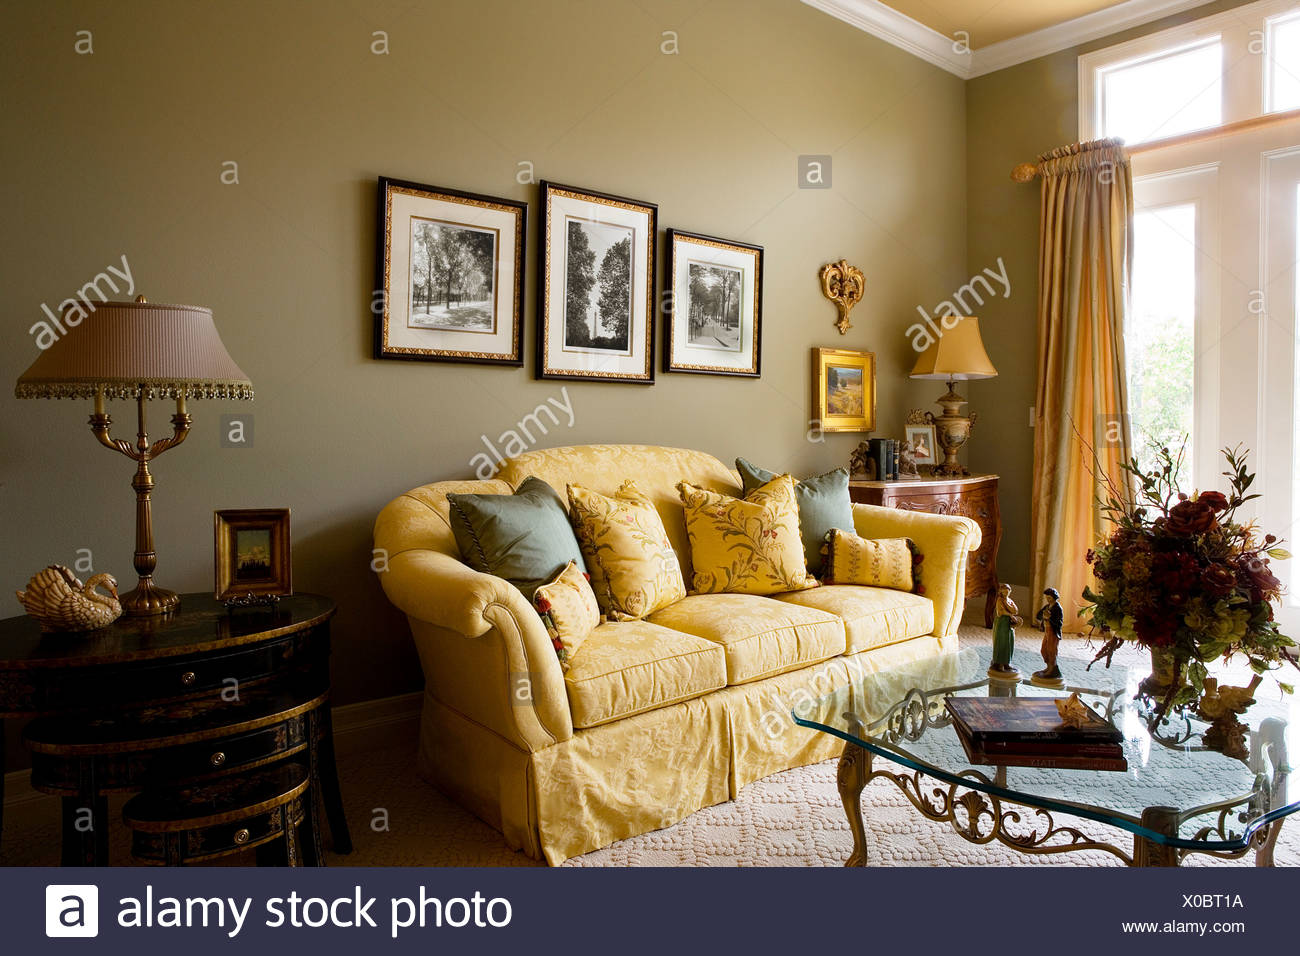 Elegant Living Room With Gold Sofa   Stock Image